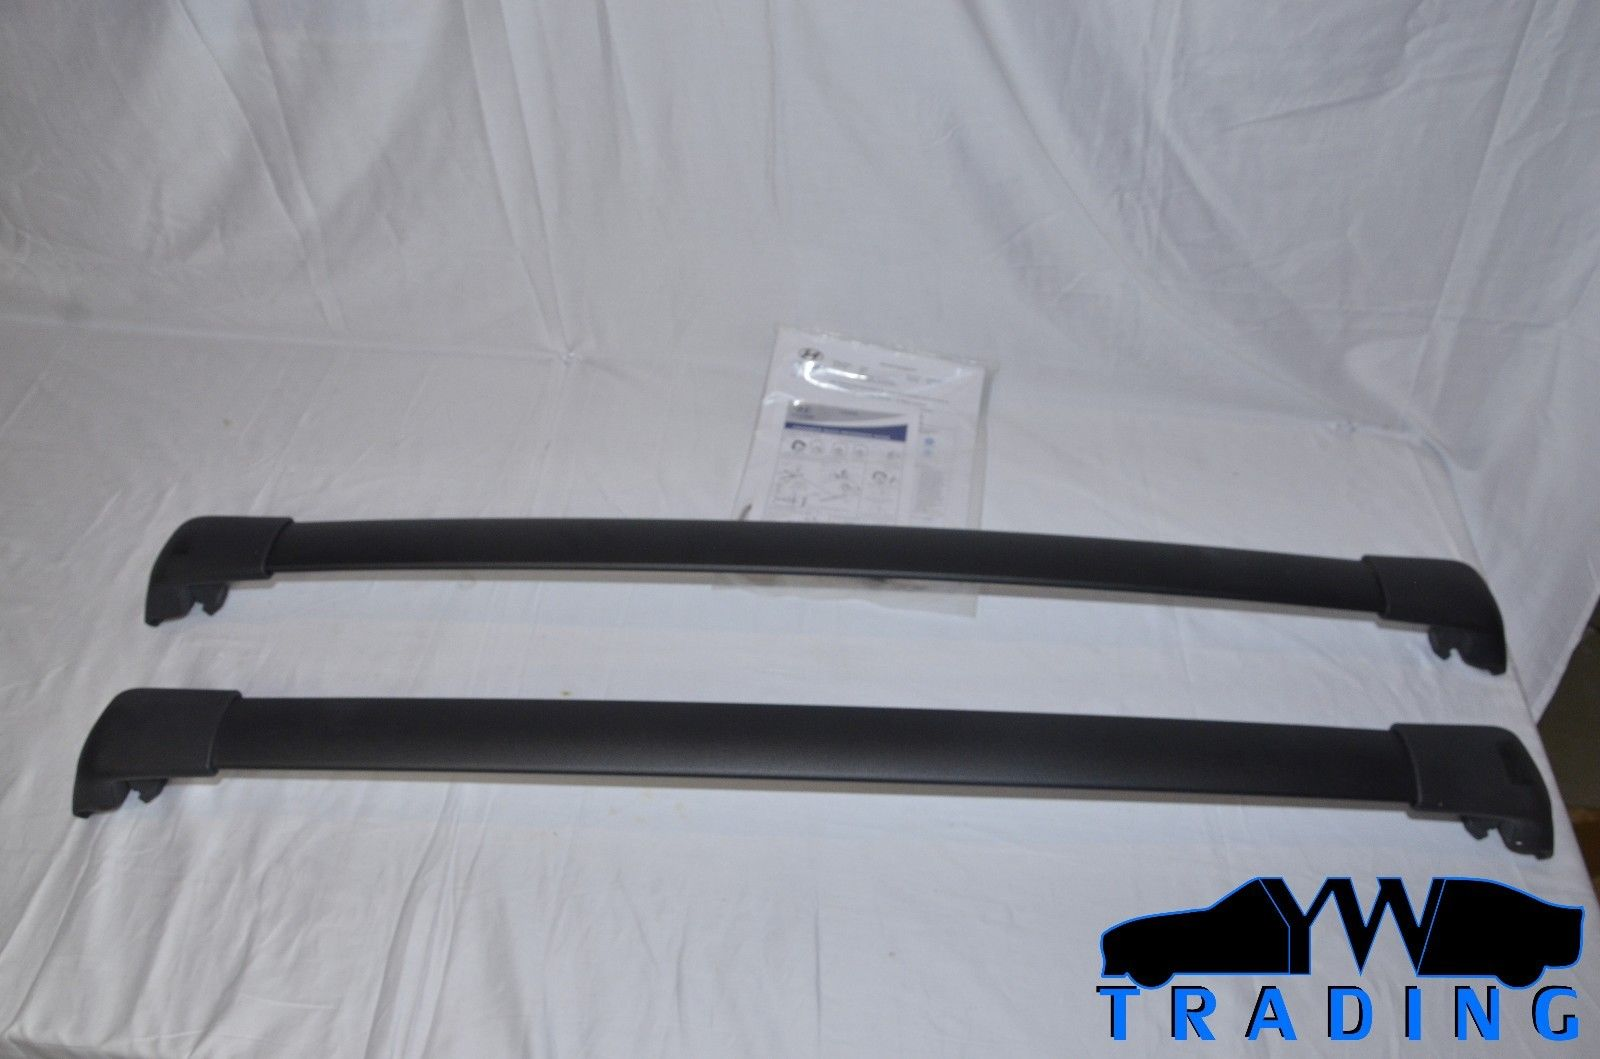 2015 - 2017 HYUNDAI TUCSON STEEL ROOF RACK CROSS BAR - D3021 ADU00 D3021 ADU00